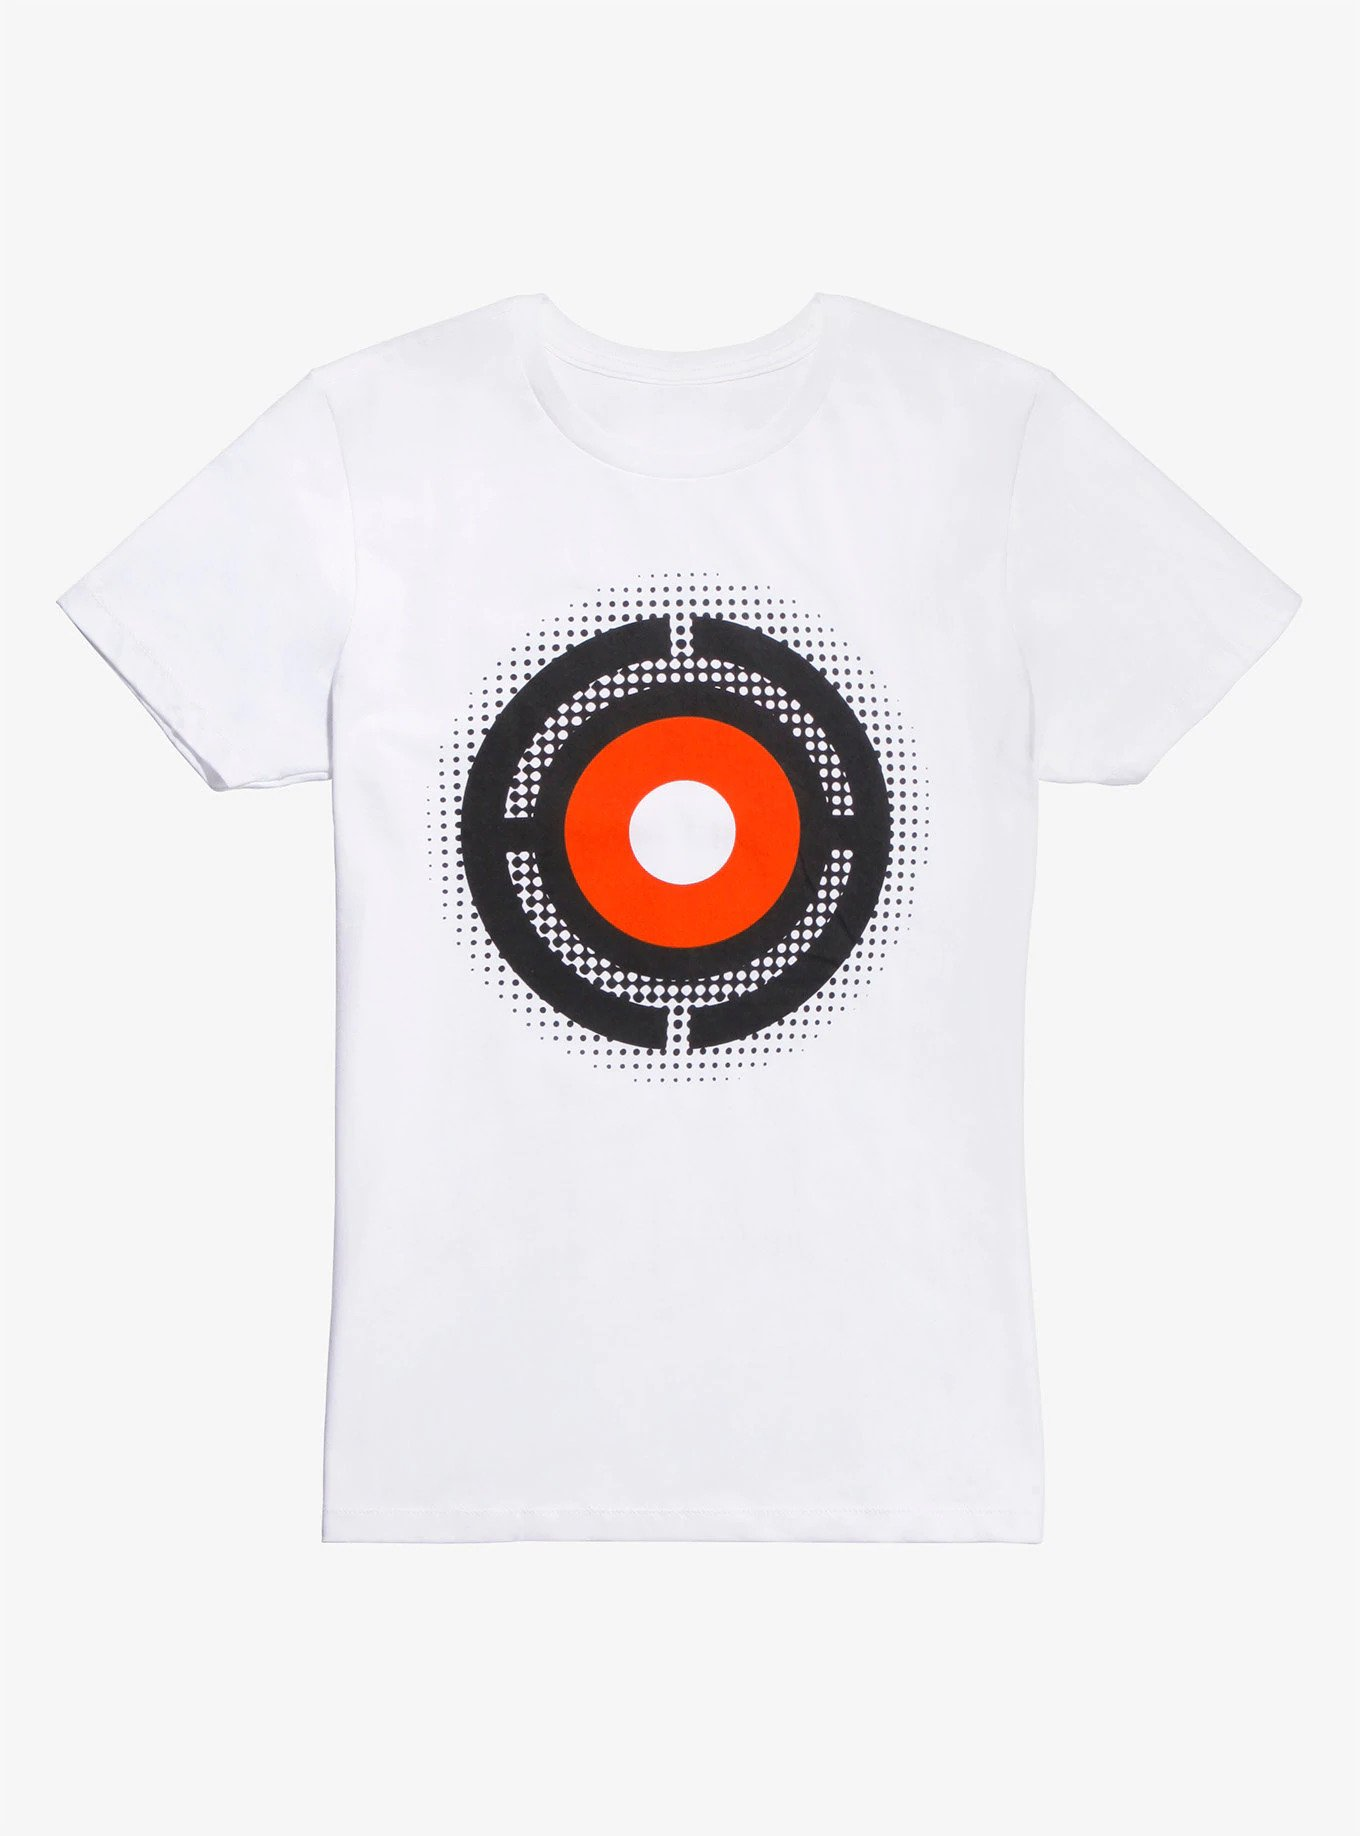 a4106bc1 Join Tim and Detective Pikachu on their quest to find Detective Goodman in  Ryme City. This white tee from Pokémon: Detective Pikachu features a Poké  Ball ...